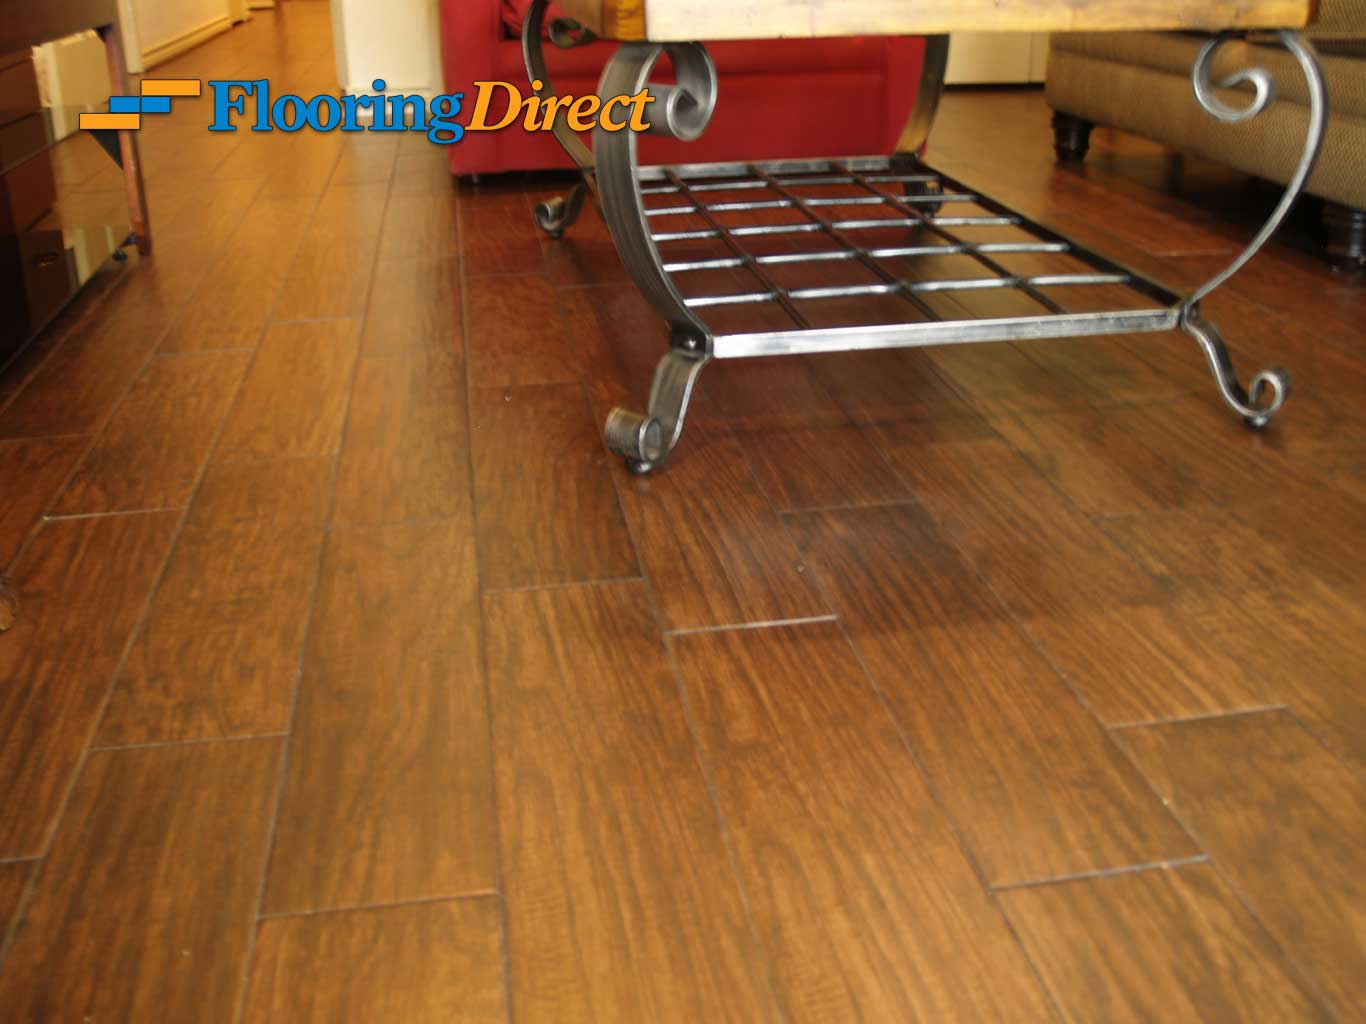 Wood-look Tile Flooring by Flooring Direct serving all of DFW including Carrollton